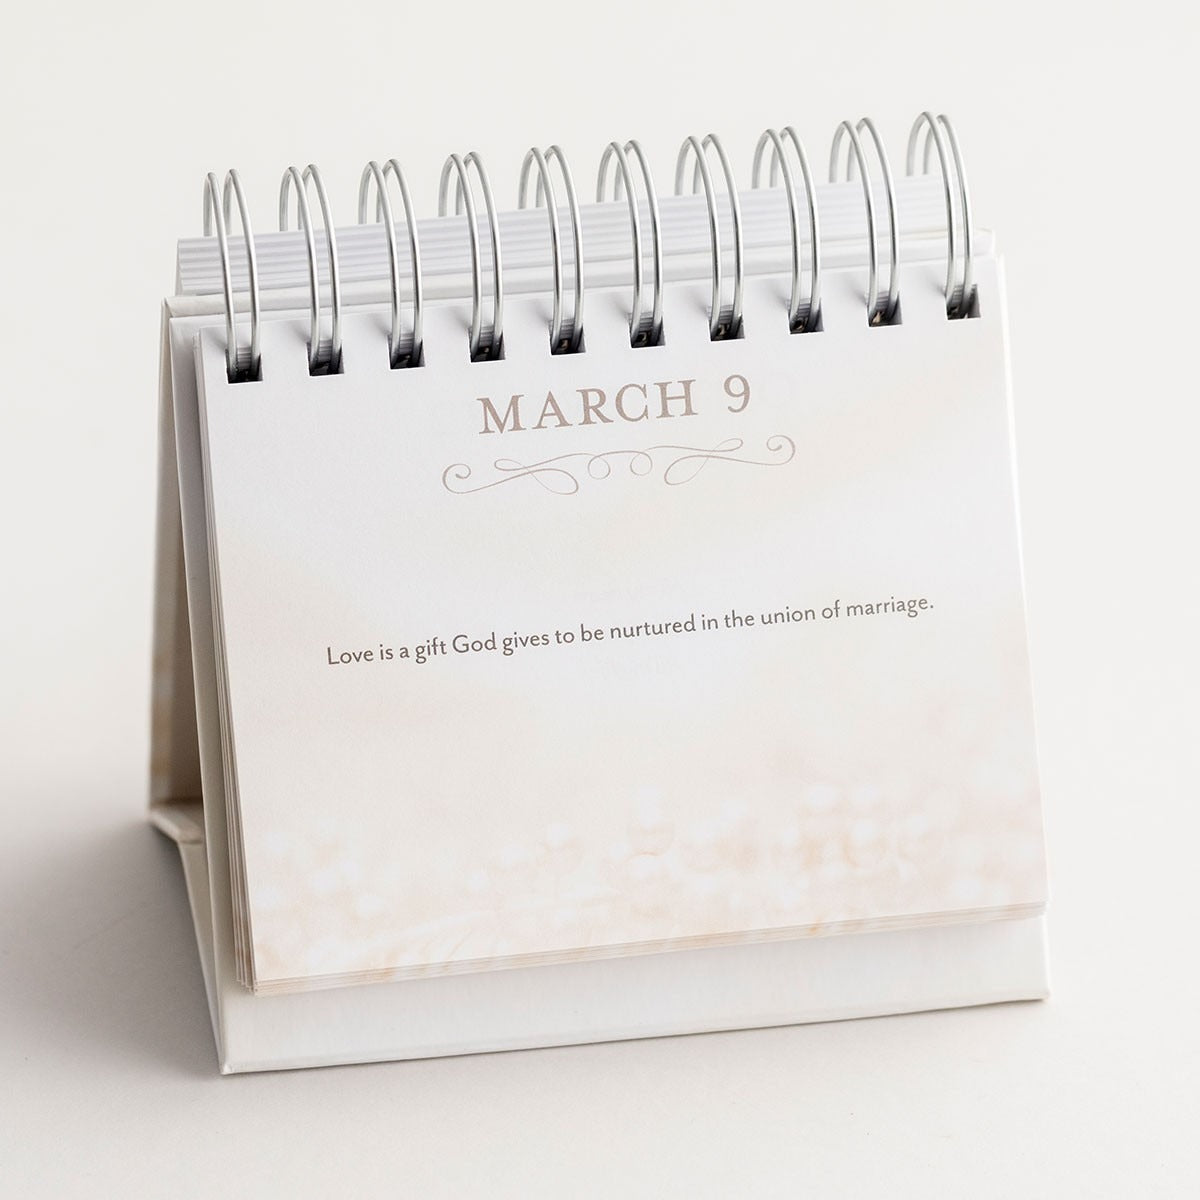 Dayspring Perpetual Calender - Marriage Blessings